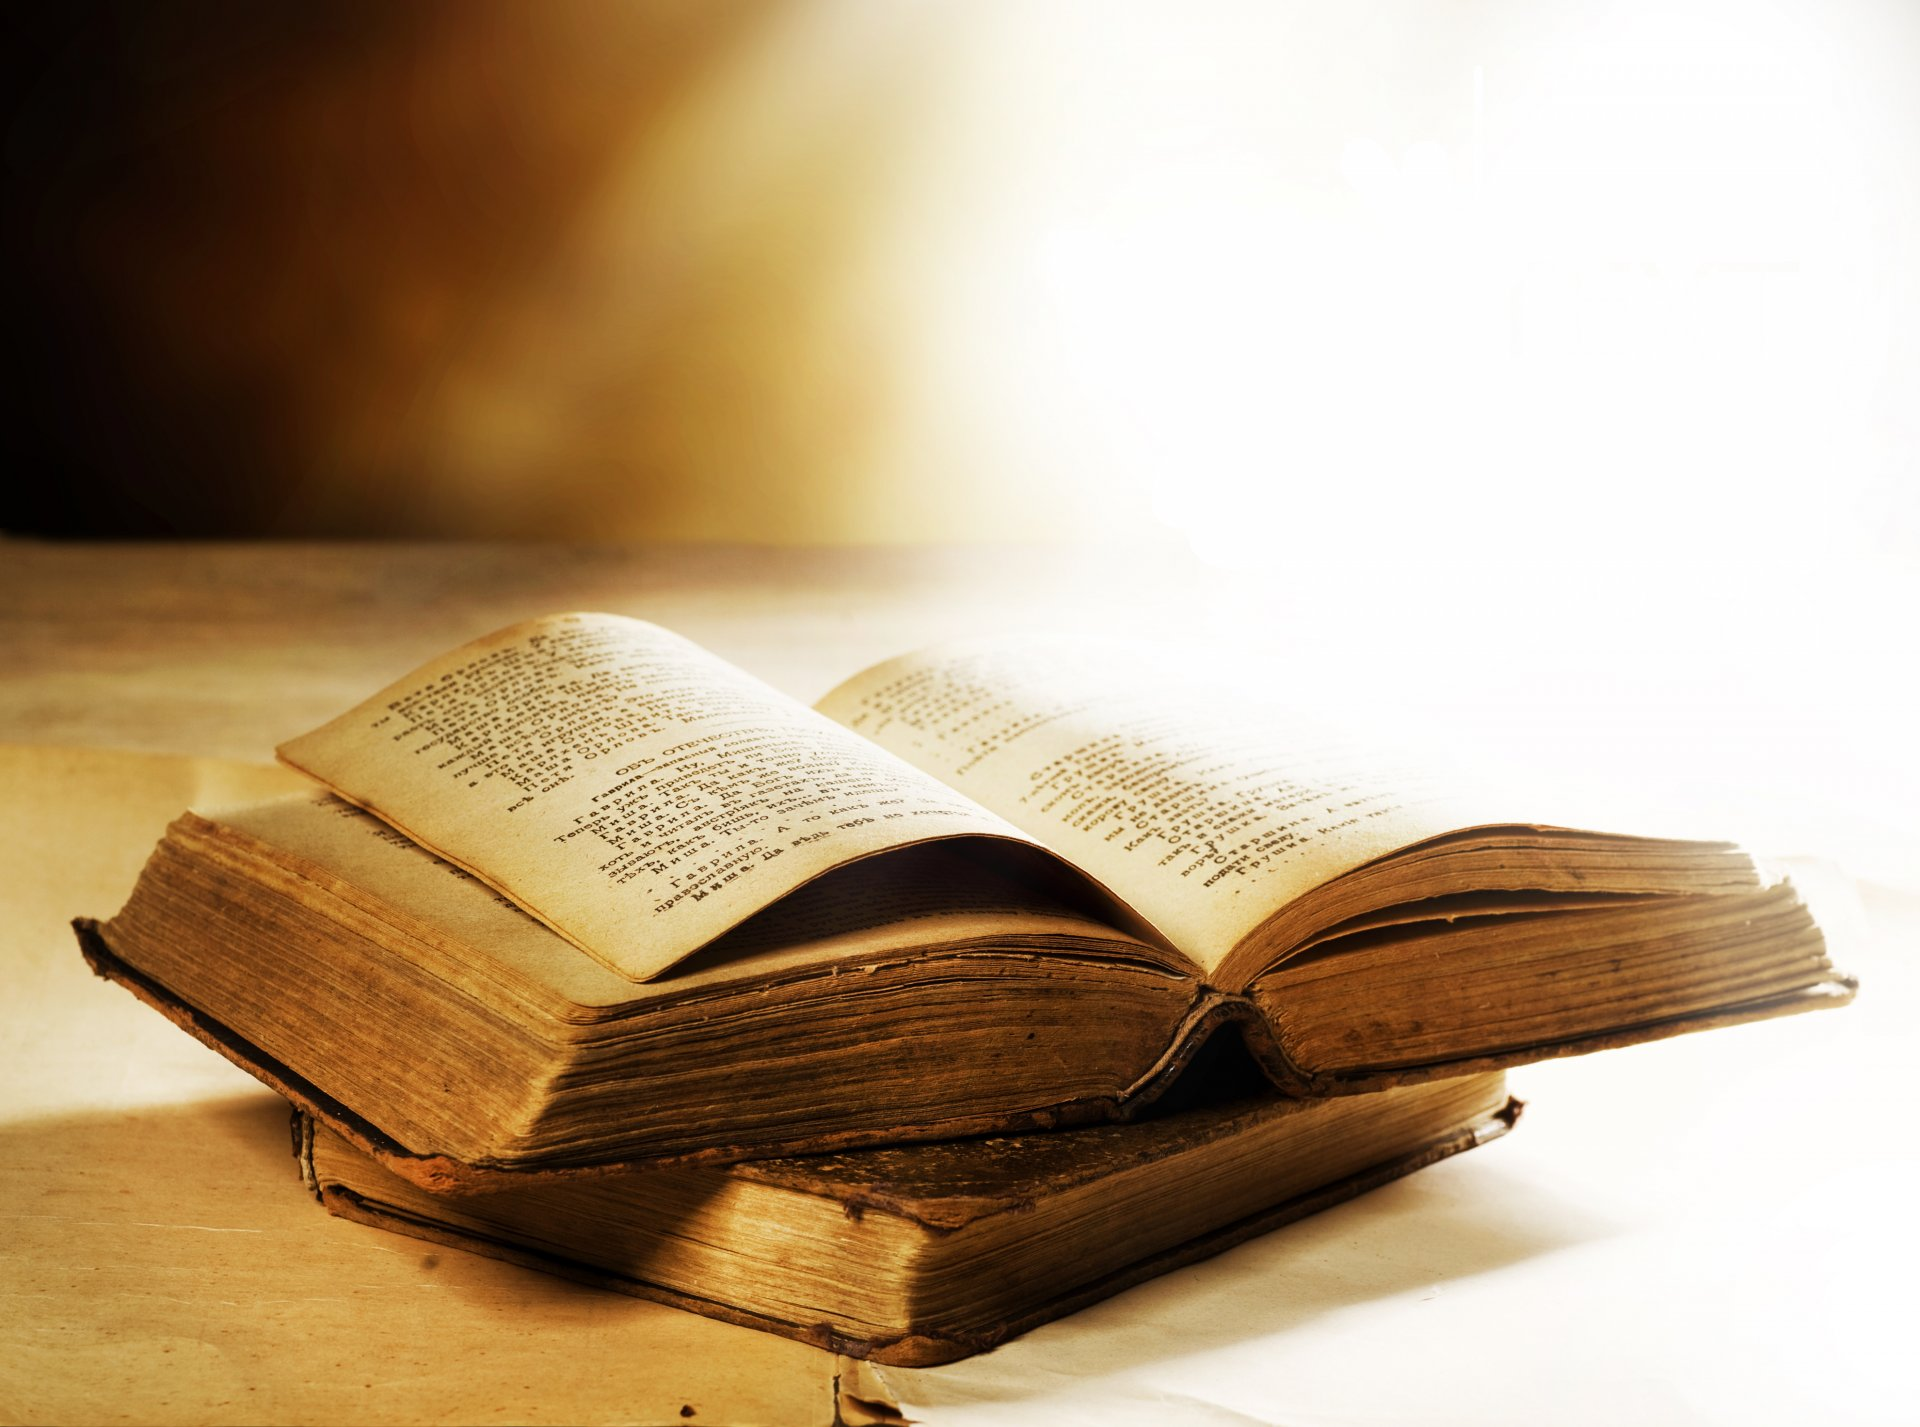 banning of books and knowledge There truly is nothing sacred when it comes to banning books at least, according to the list of banned or challenged books for 2015 that was released by the american library association.